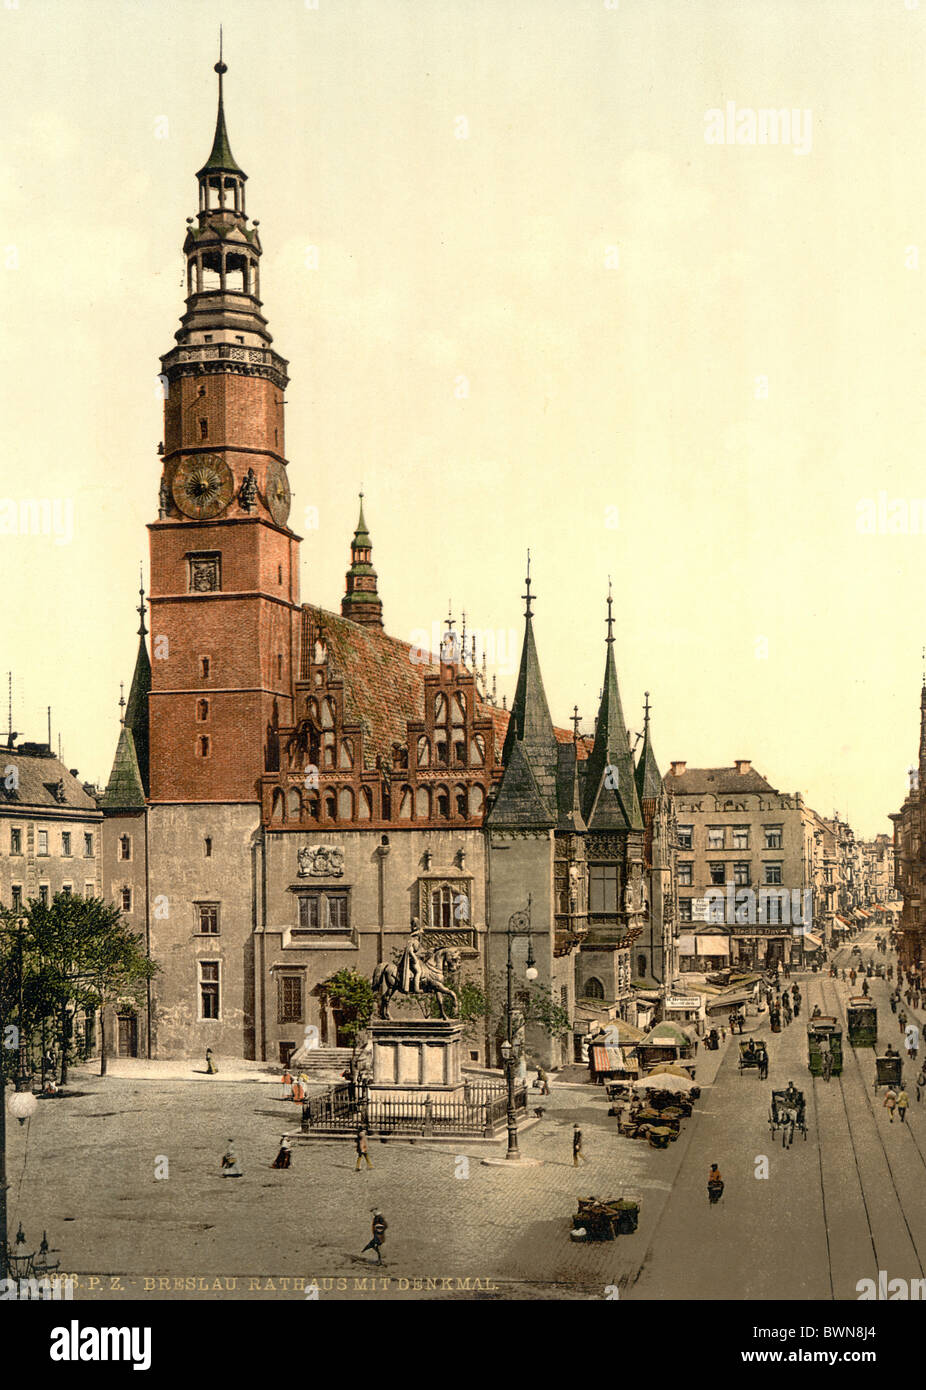 Breslau Town hall Silesia Brick Gothic architecture square formerly Germany Europe German Empire Poland Phot - Stock Image